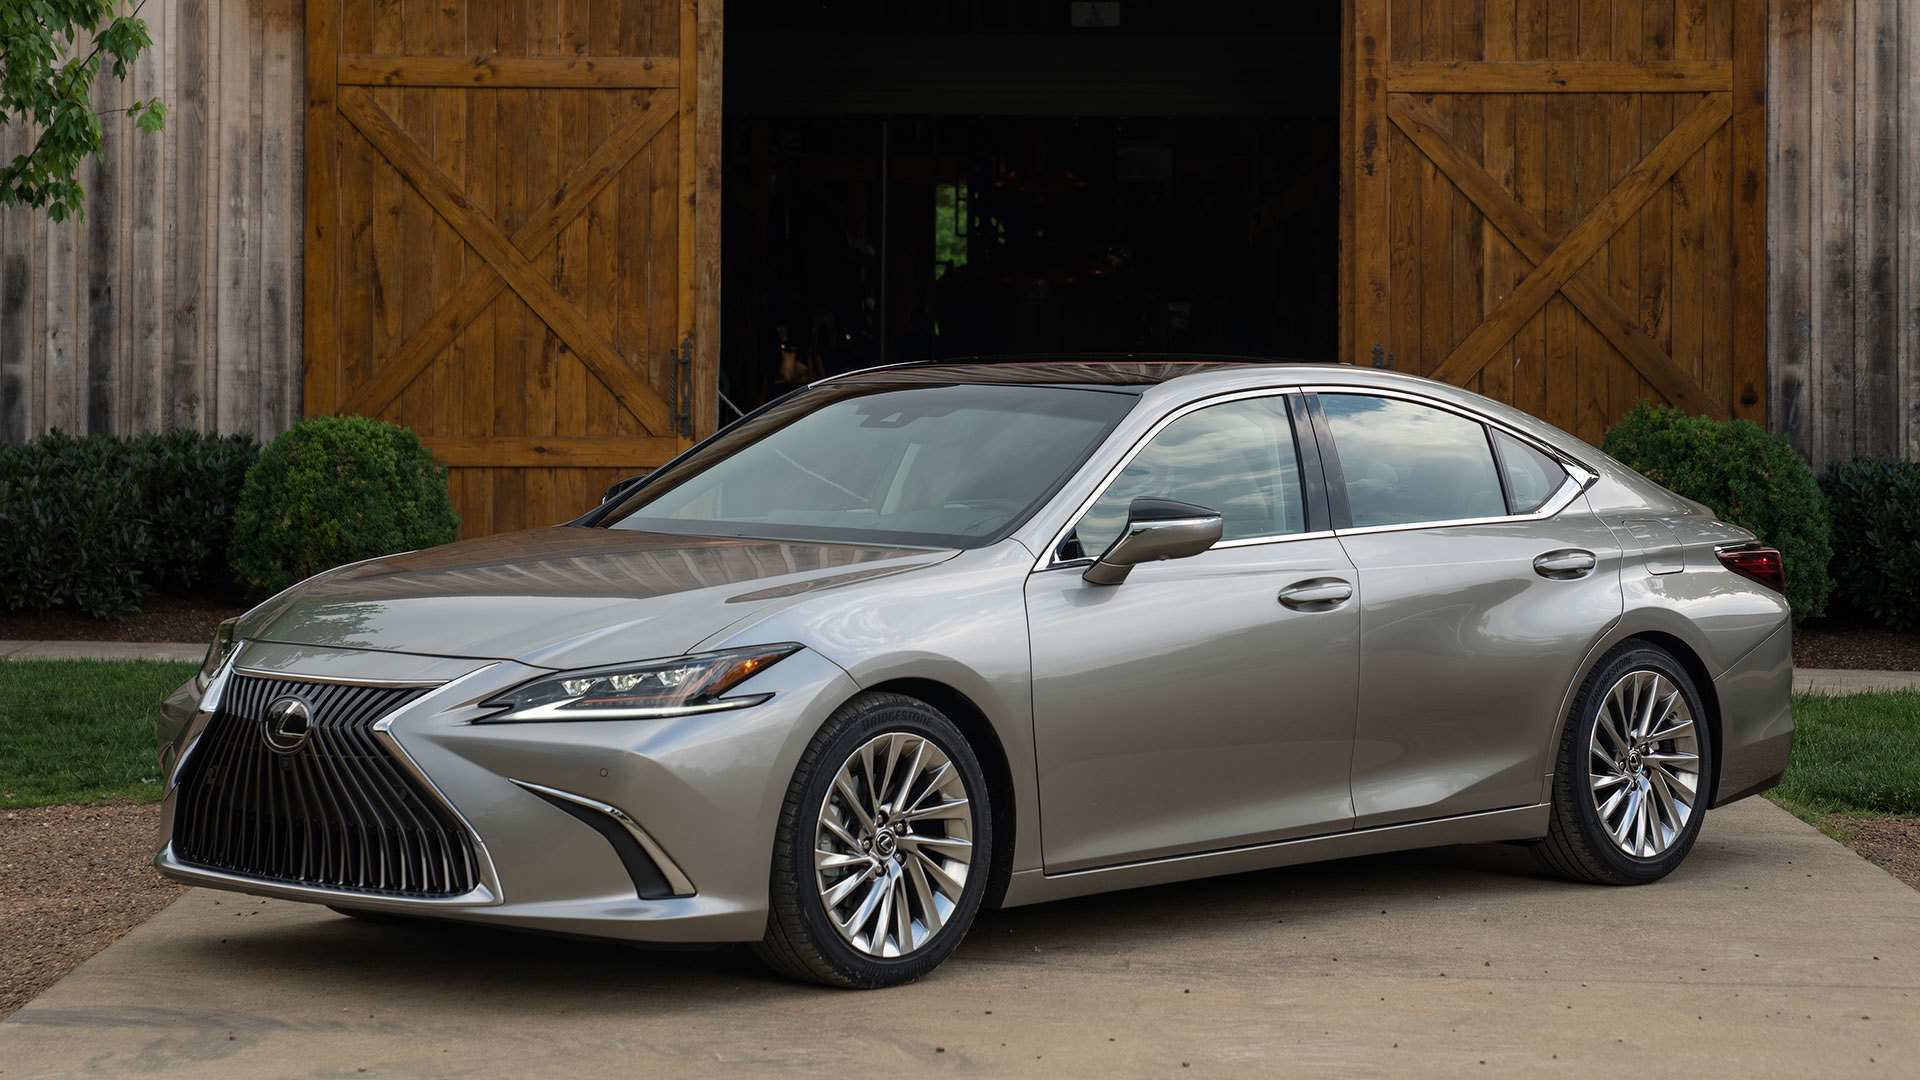 38 New 2019 Lexus Es 350 F Sport Spy Shoot